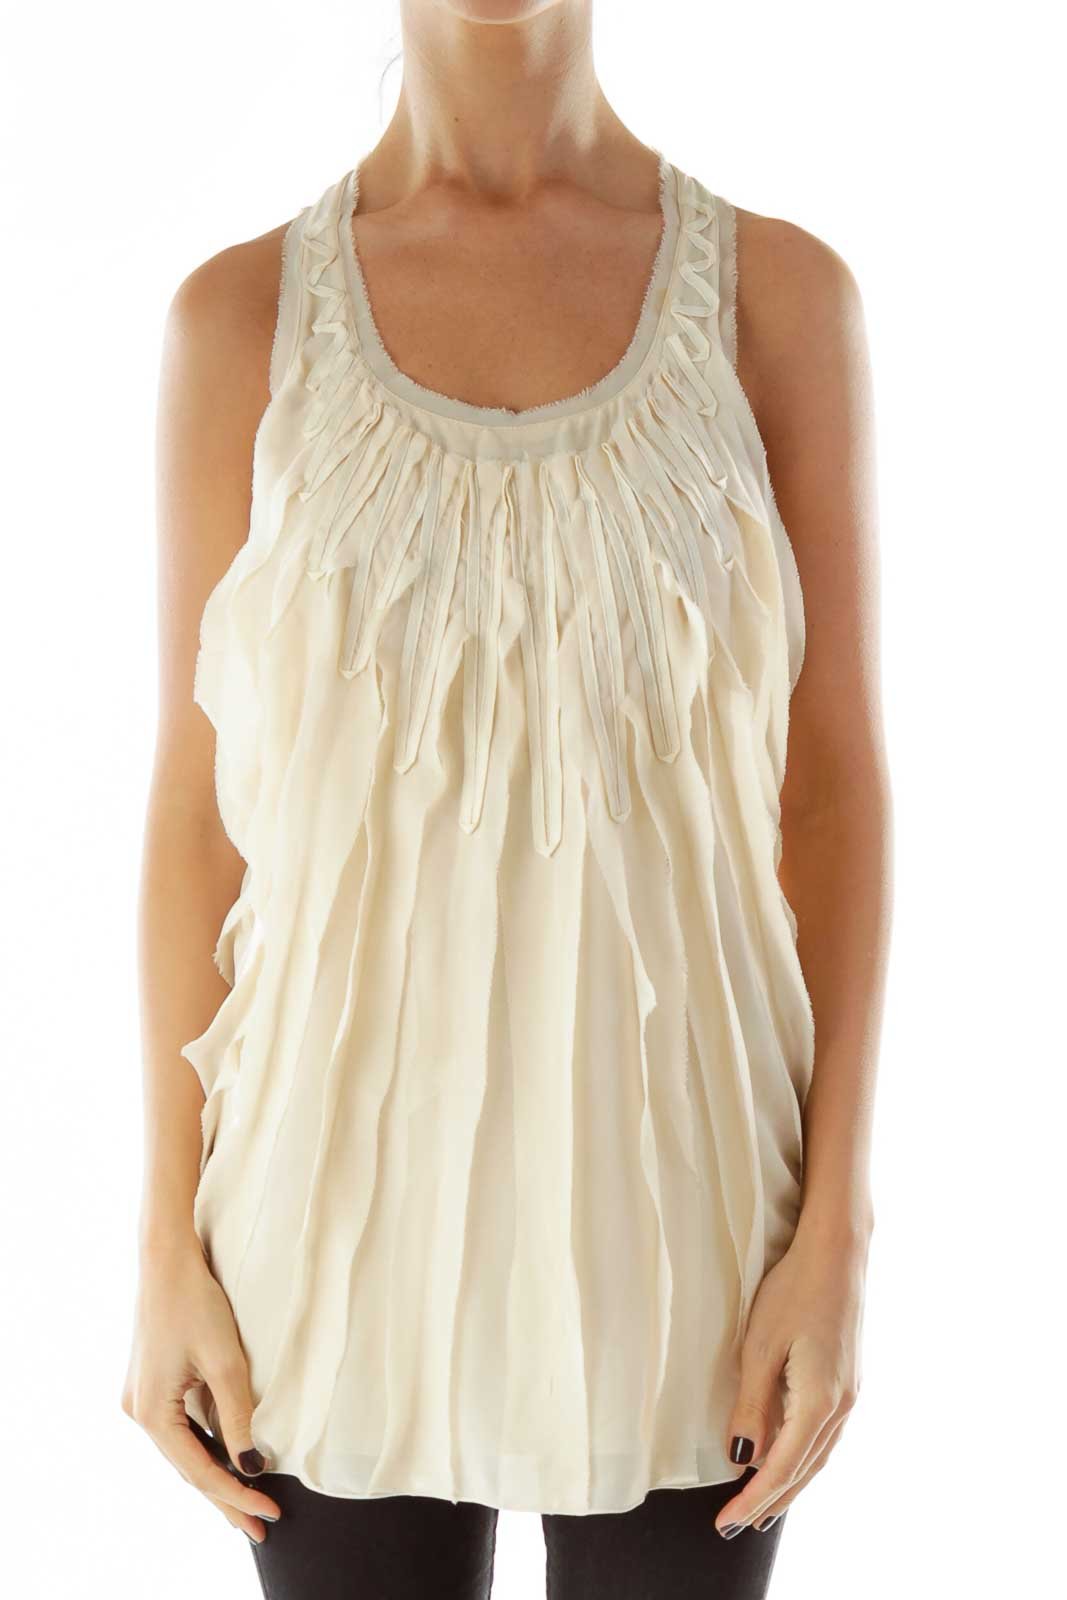 Beige Ruffled Tank Top Front